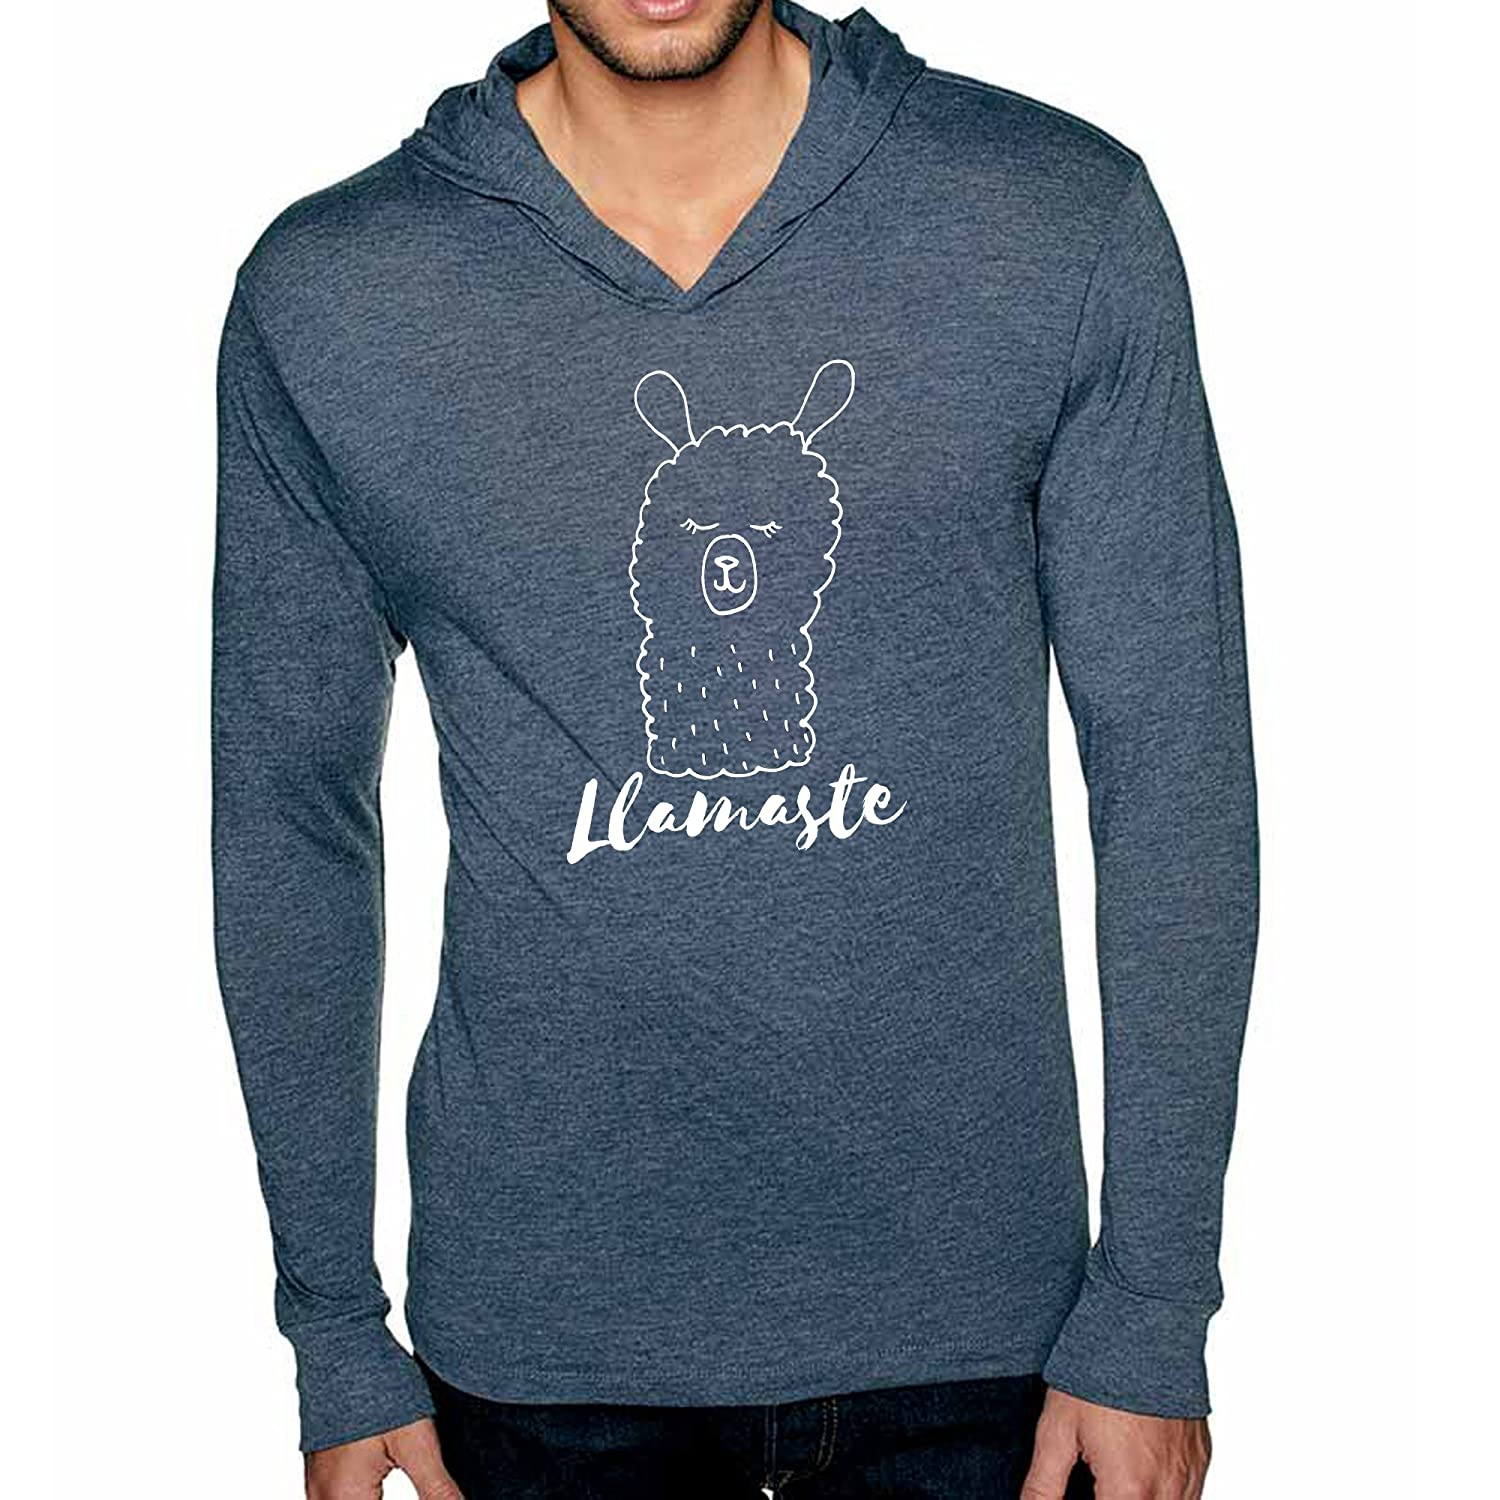 Llamaste Long Sleeve Unisex Hoodie, Unisex Graphic Hoodie, Screen Printed, Indigo